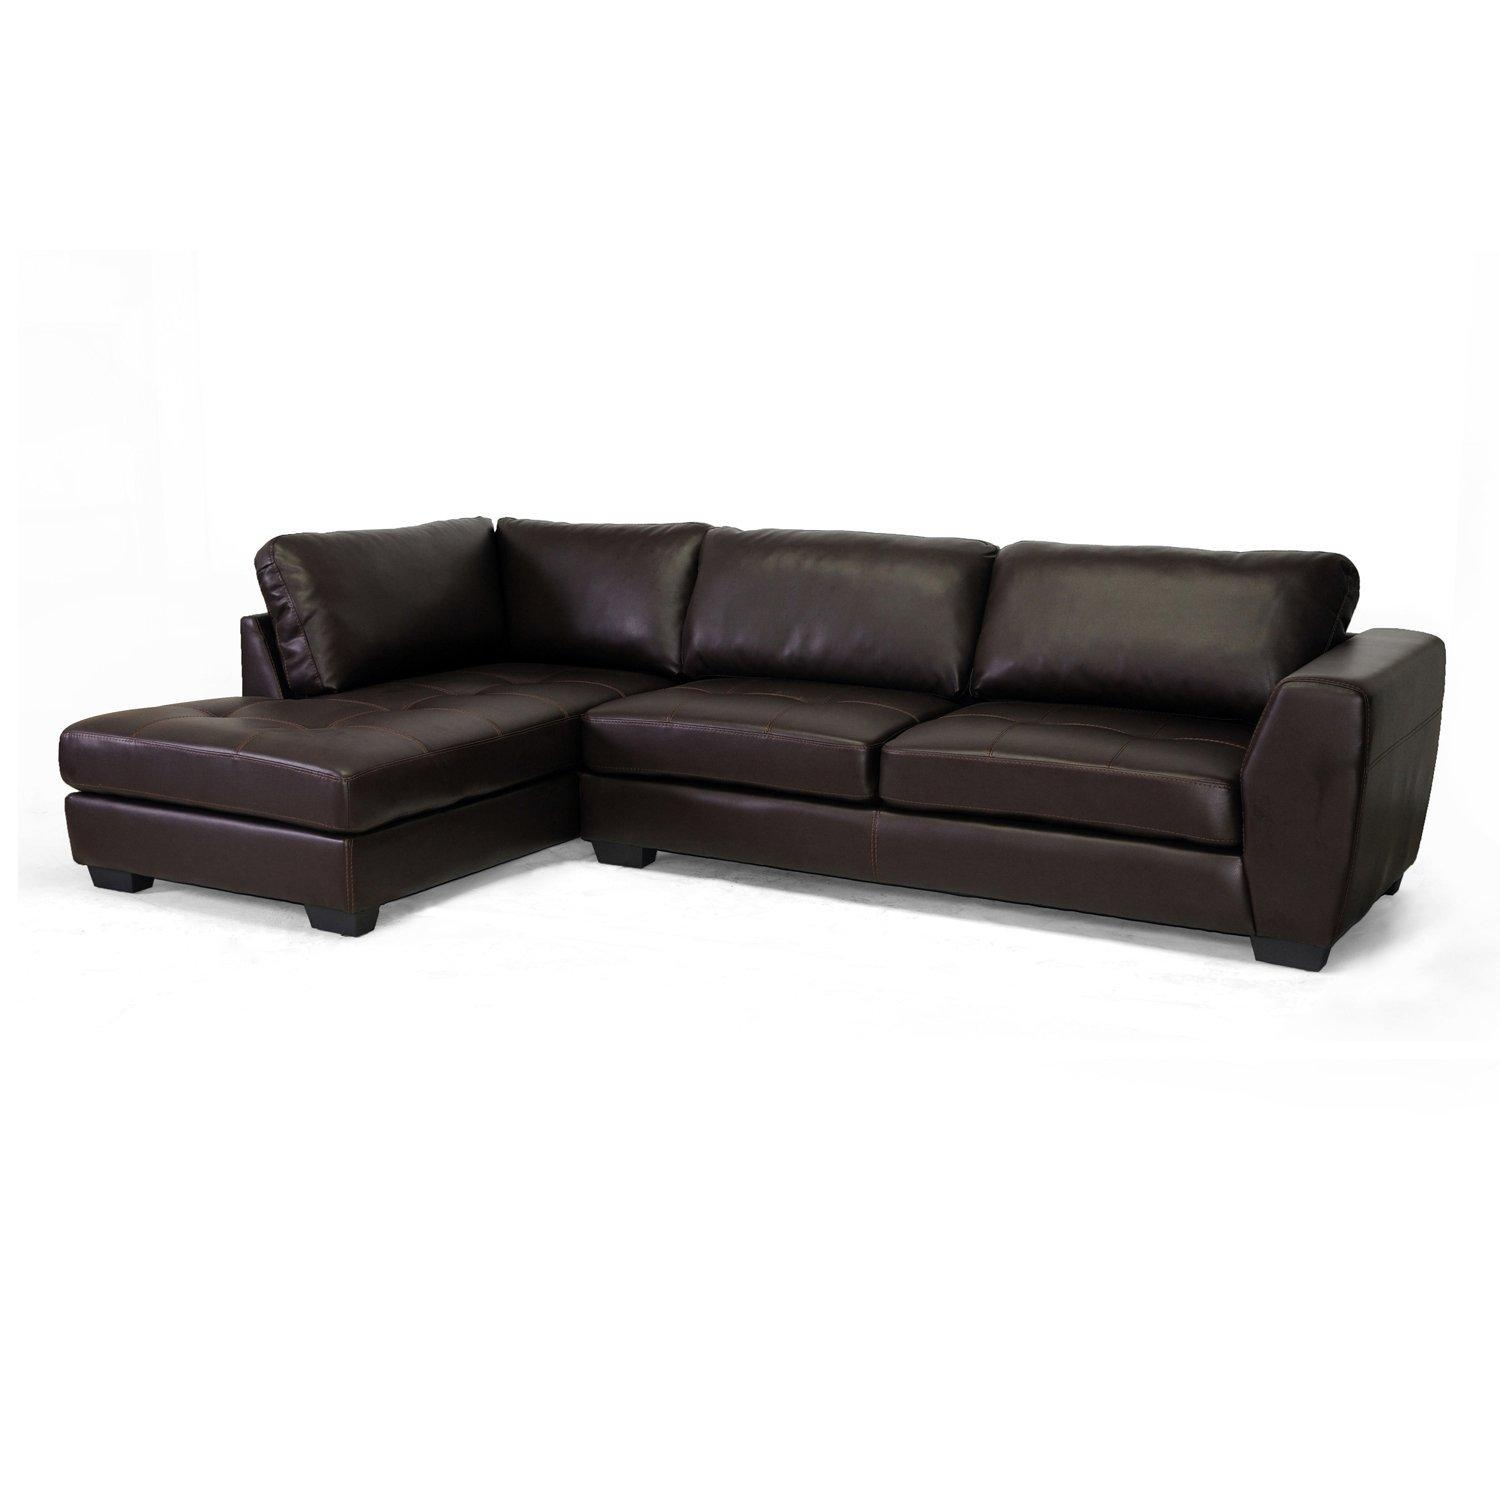 baxton studio dobson leather modern sectional sofa broyhill furniture 15 collection of braxton ideas